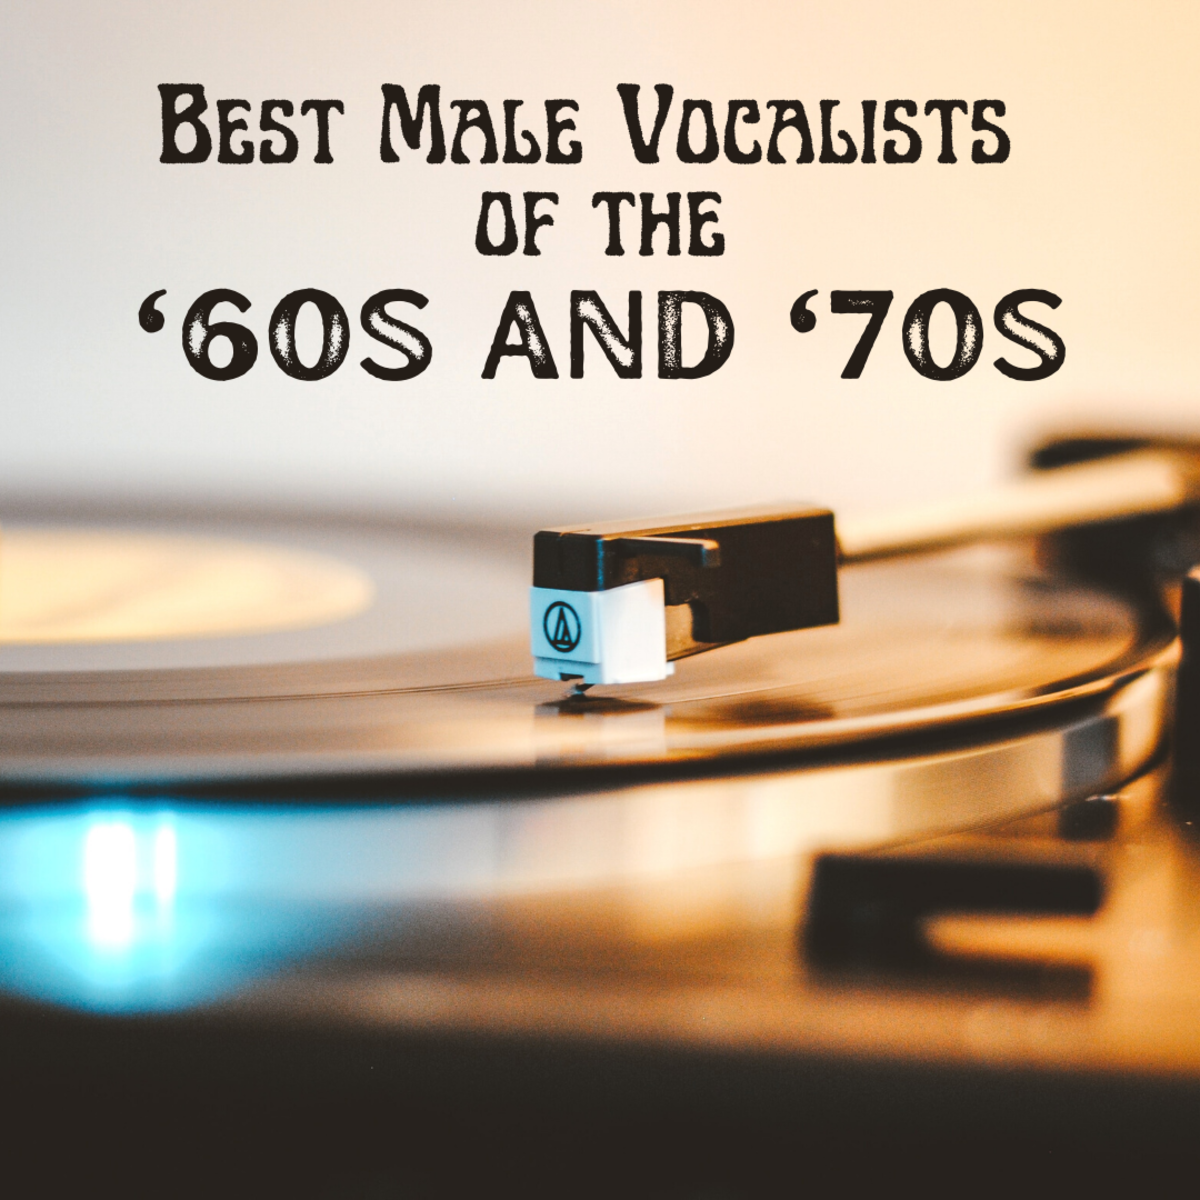 Here is my list of the top 20 male singers of the '60s and '70s.